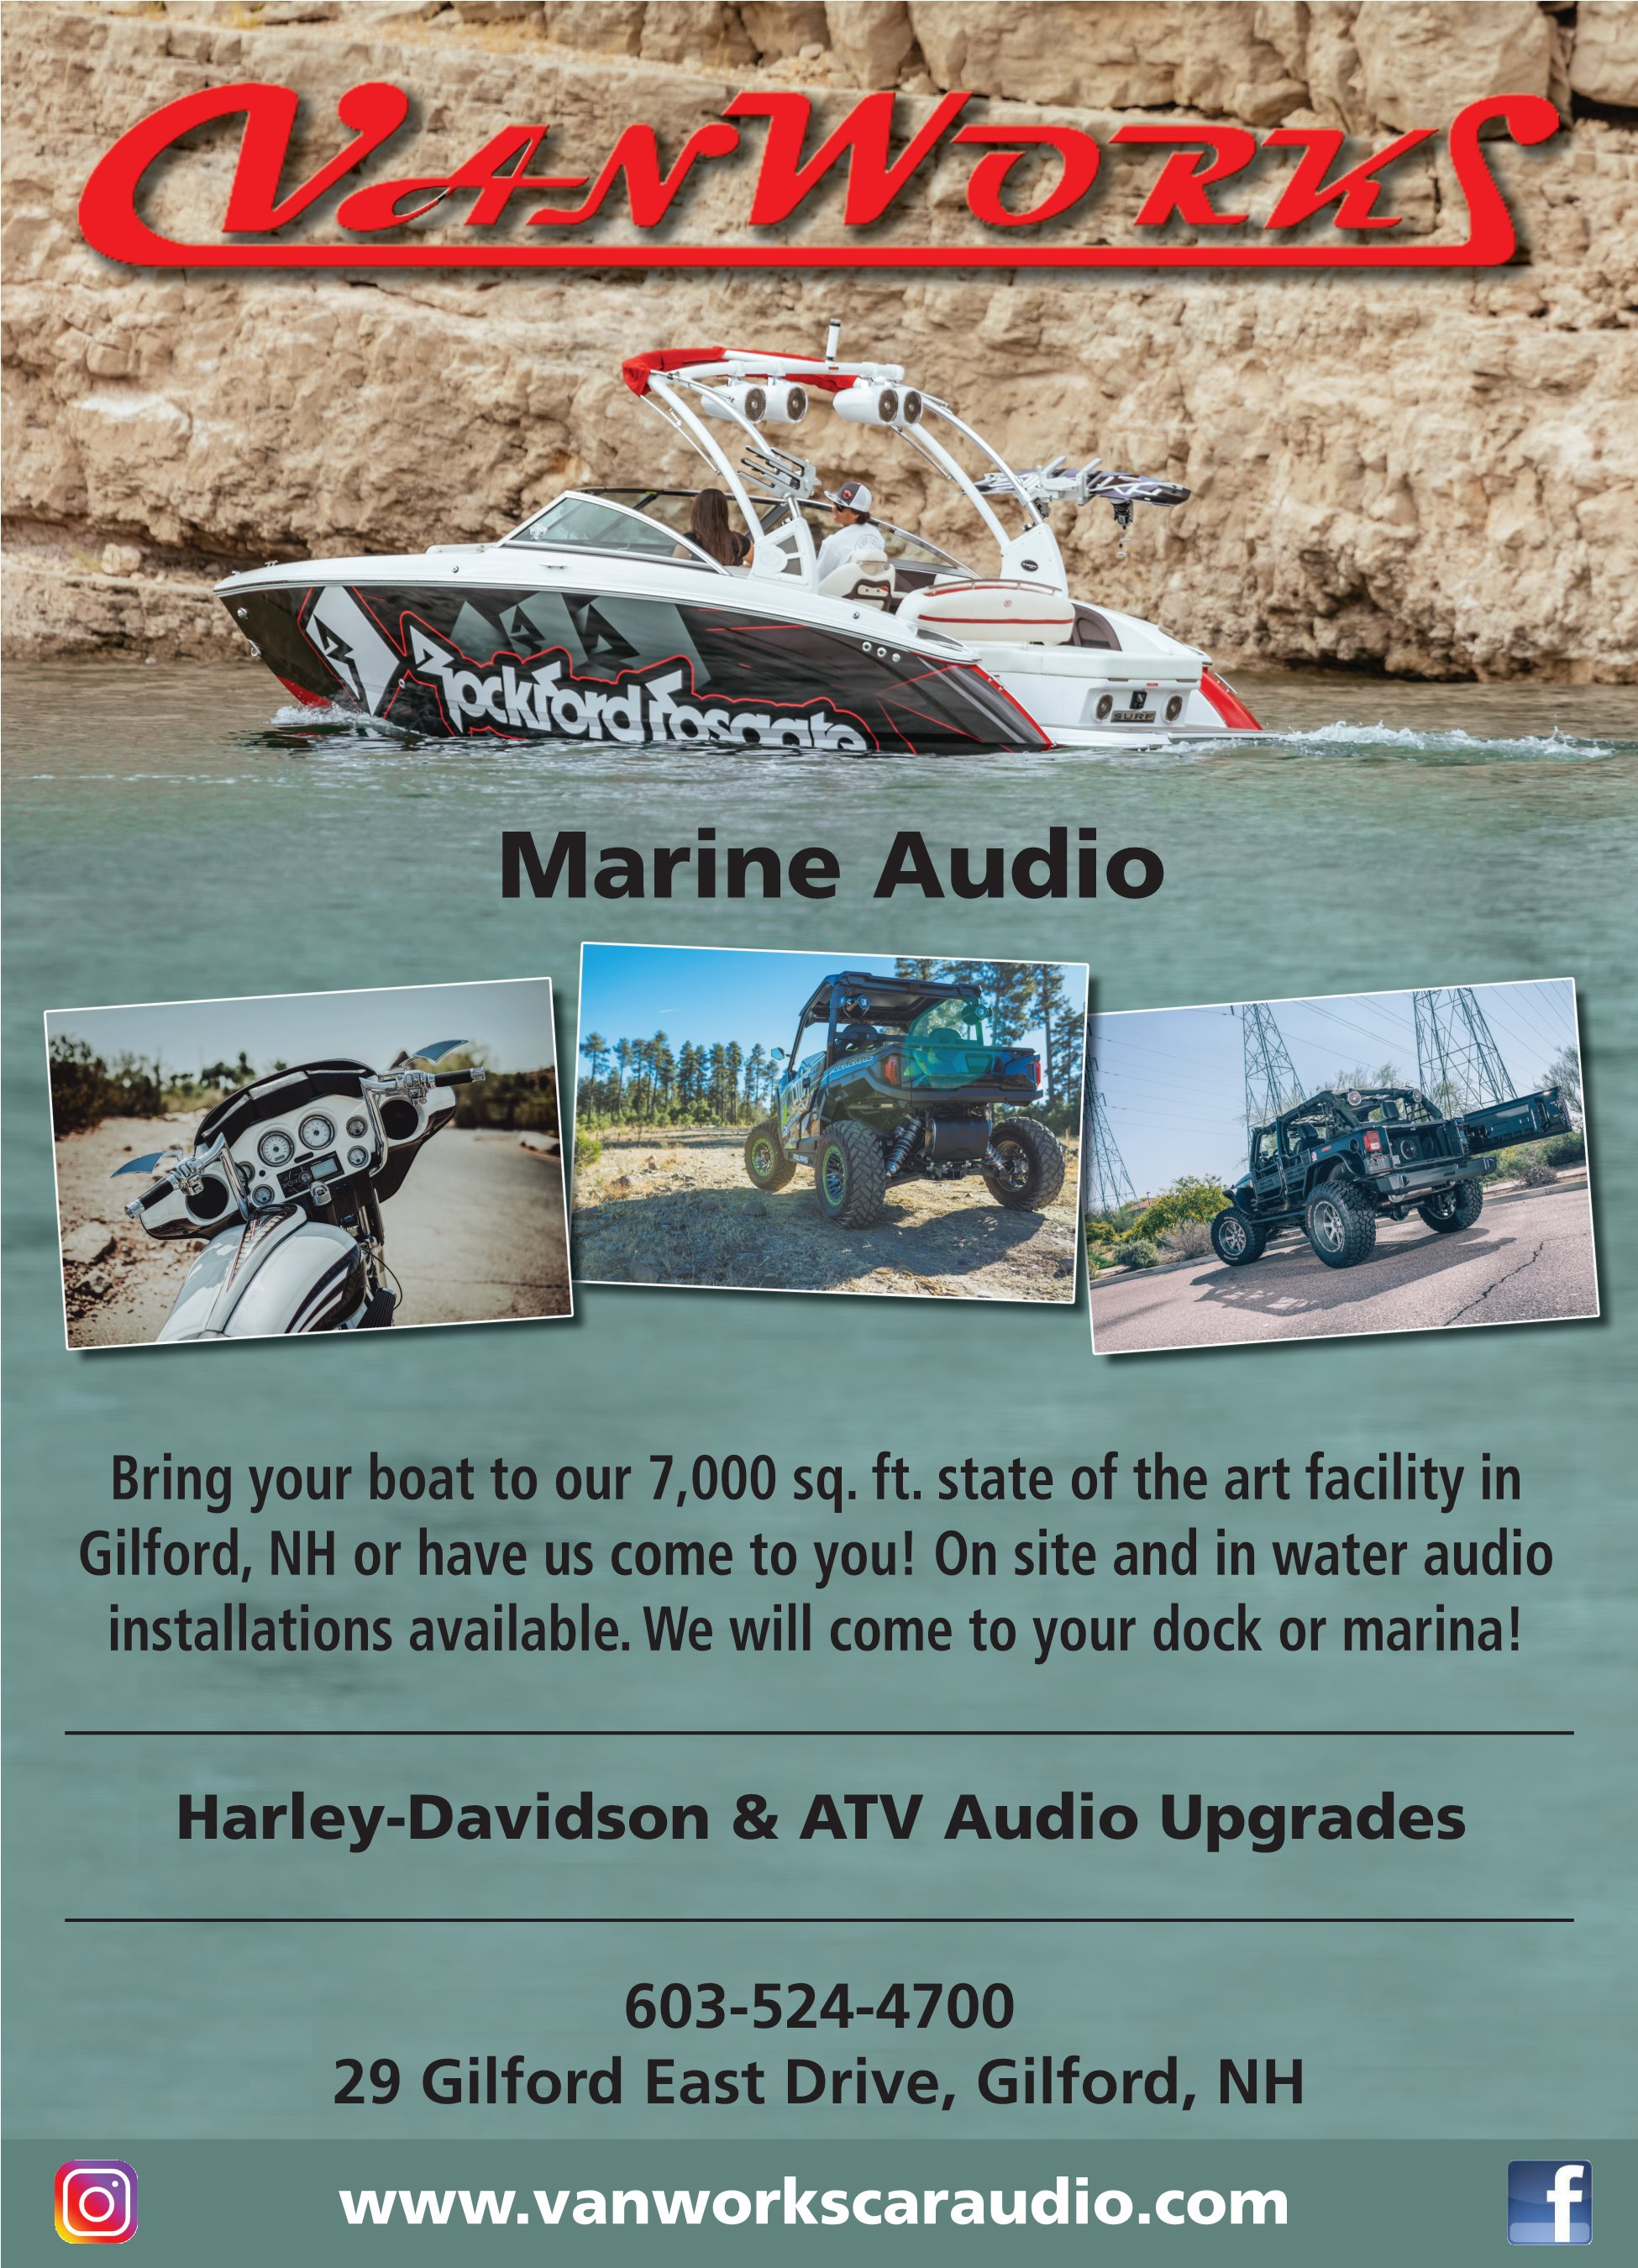 The sun is out and it is time to play. - Time to break out of the winter blues and finally enjoy the sunshine! We have many options available when it comes to car, boat, motorcycle, RV and ATV audio. Enjoy your time doing what you love while having the right system for the best sound!